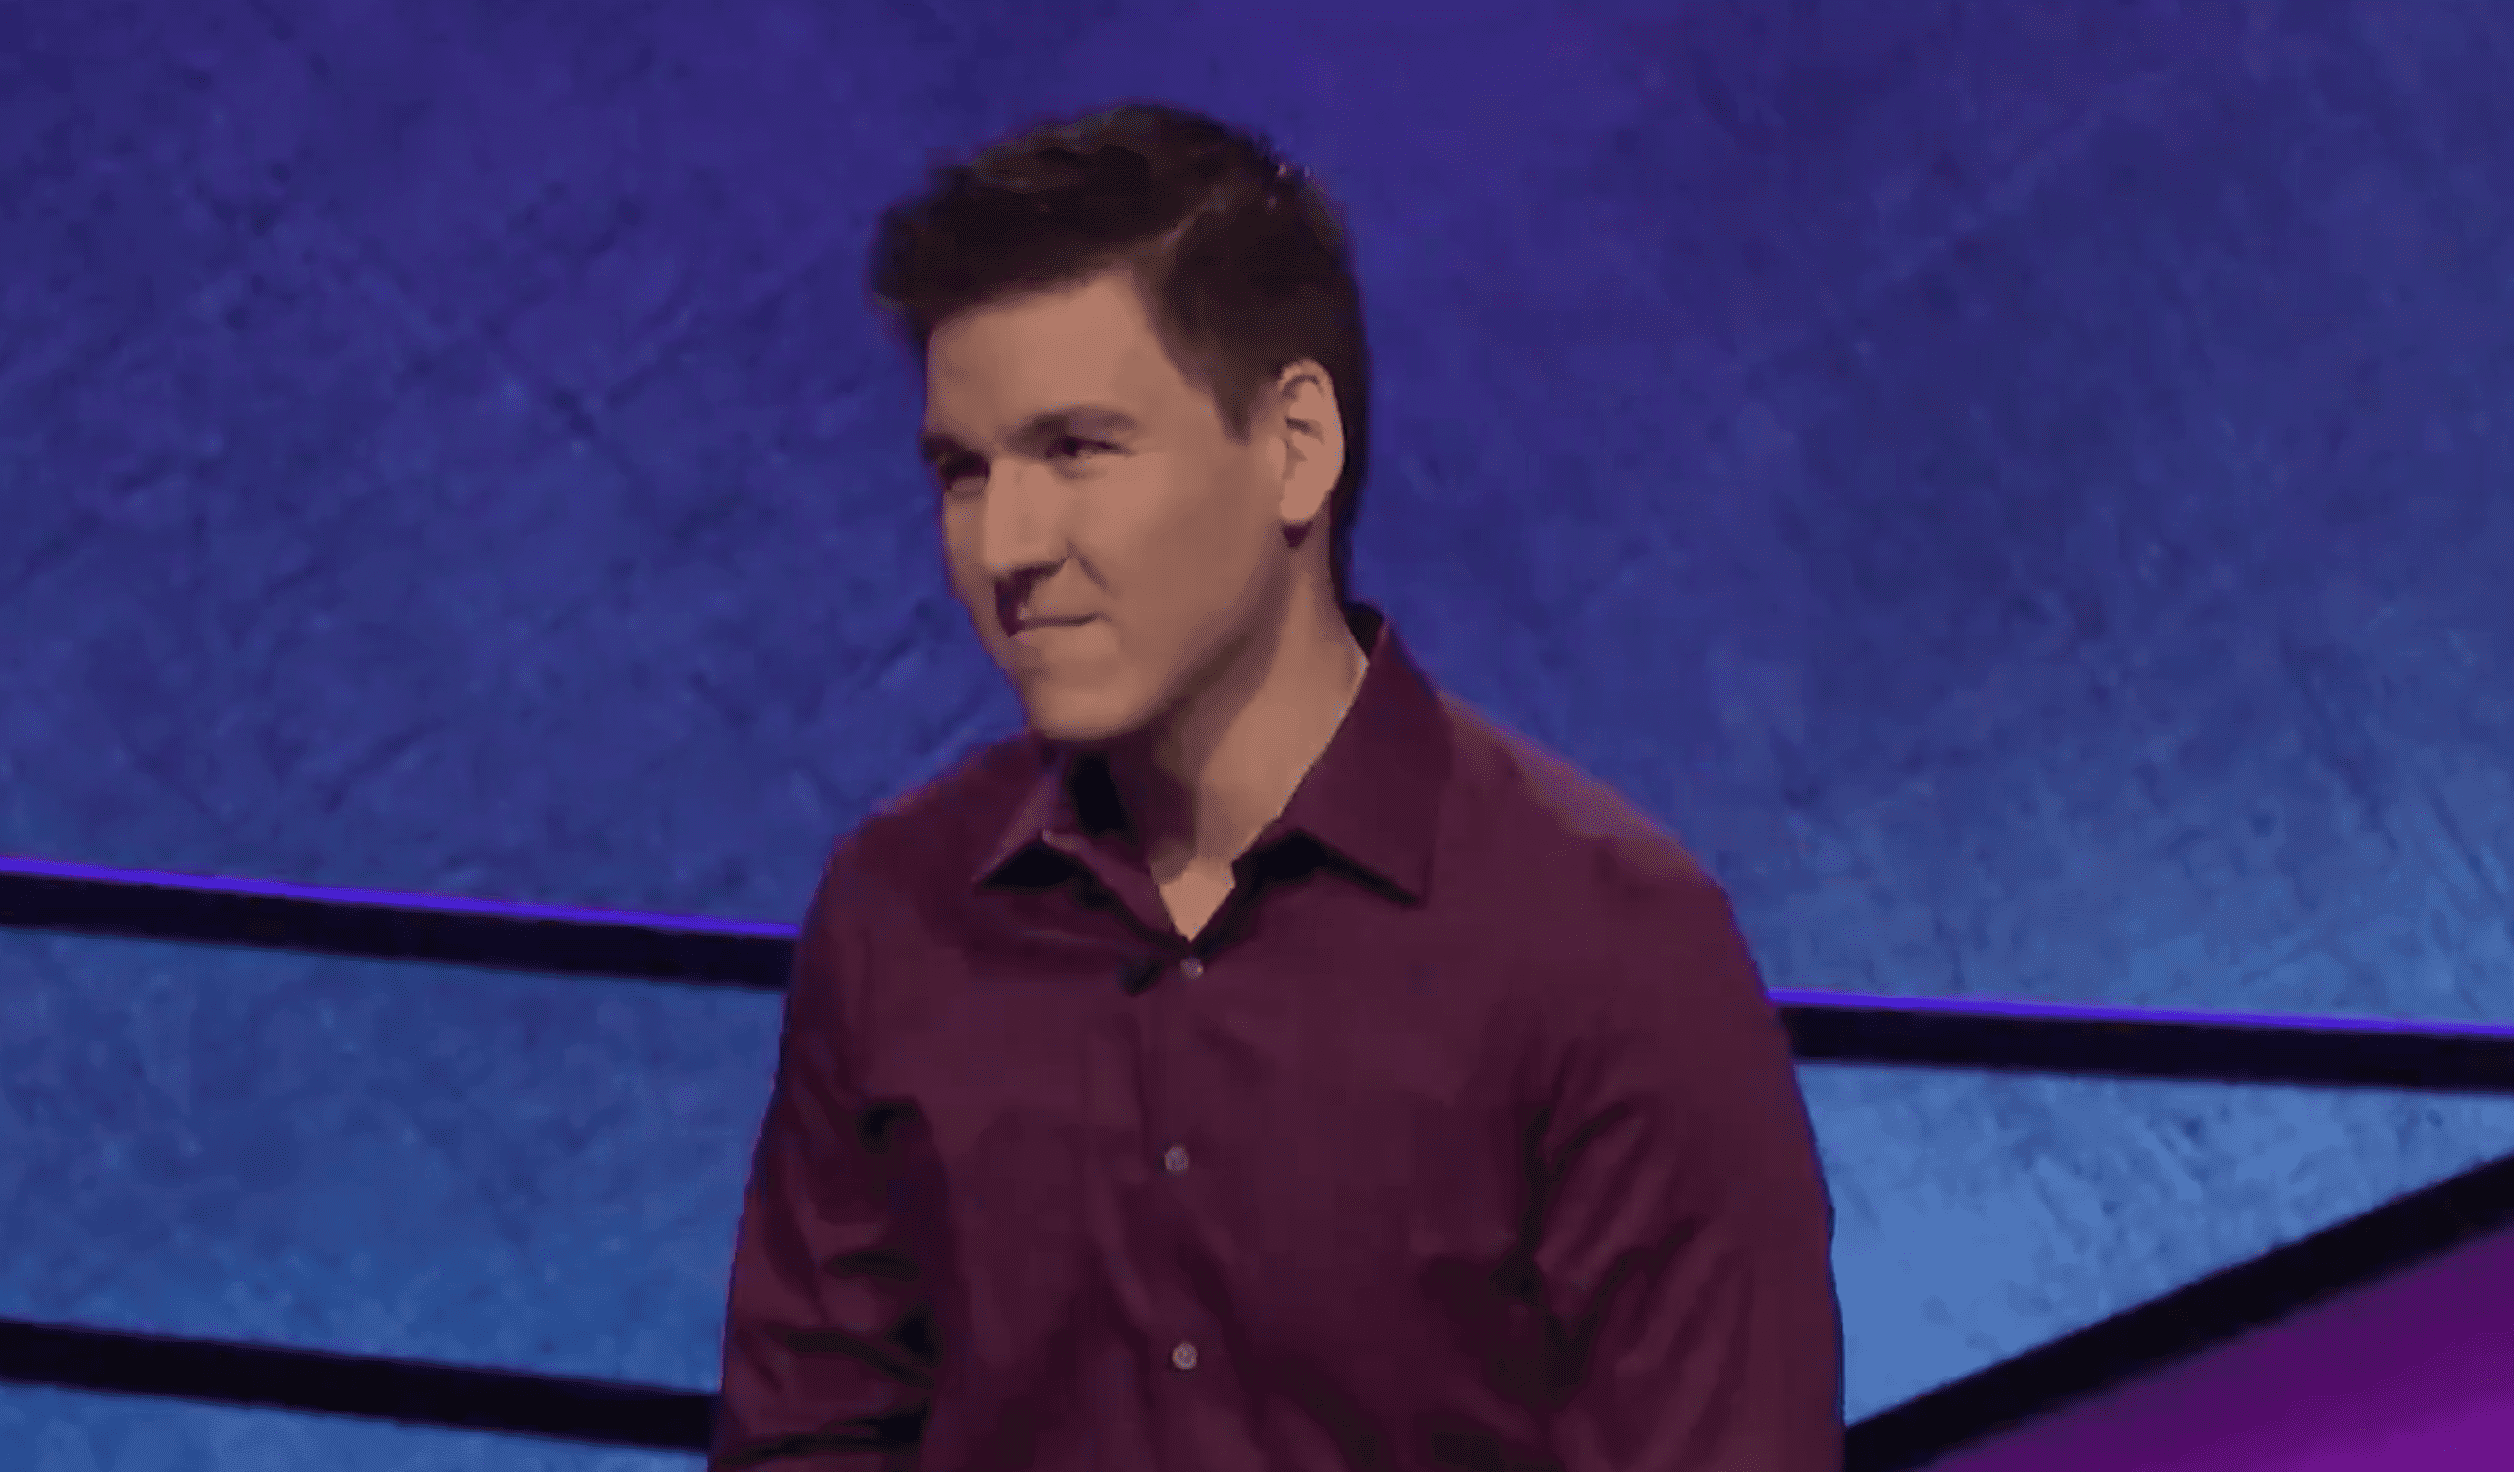 """James Holzhauer during the """"Jeopardy!"""" show.   Source: Twitter/Jeopardy!"""